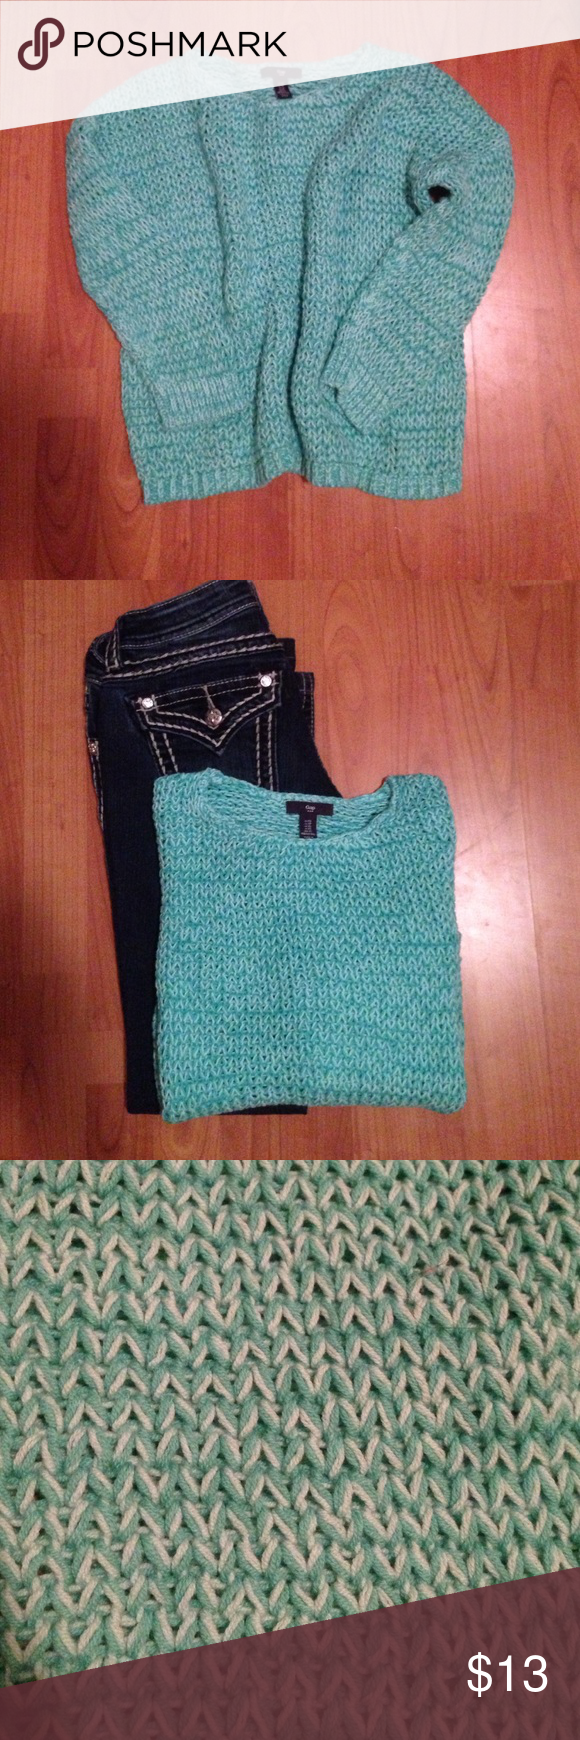 Sweater Gap loose knit sweater, perfect for a cool summer night.   Very soft and comfortable. GAP Sweaters Crew & Scoop Necks